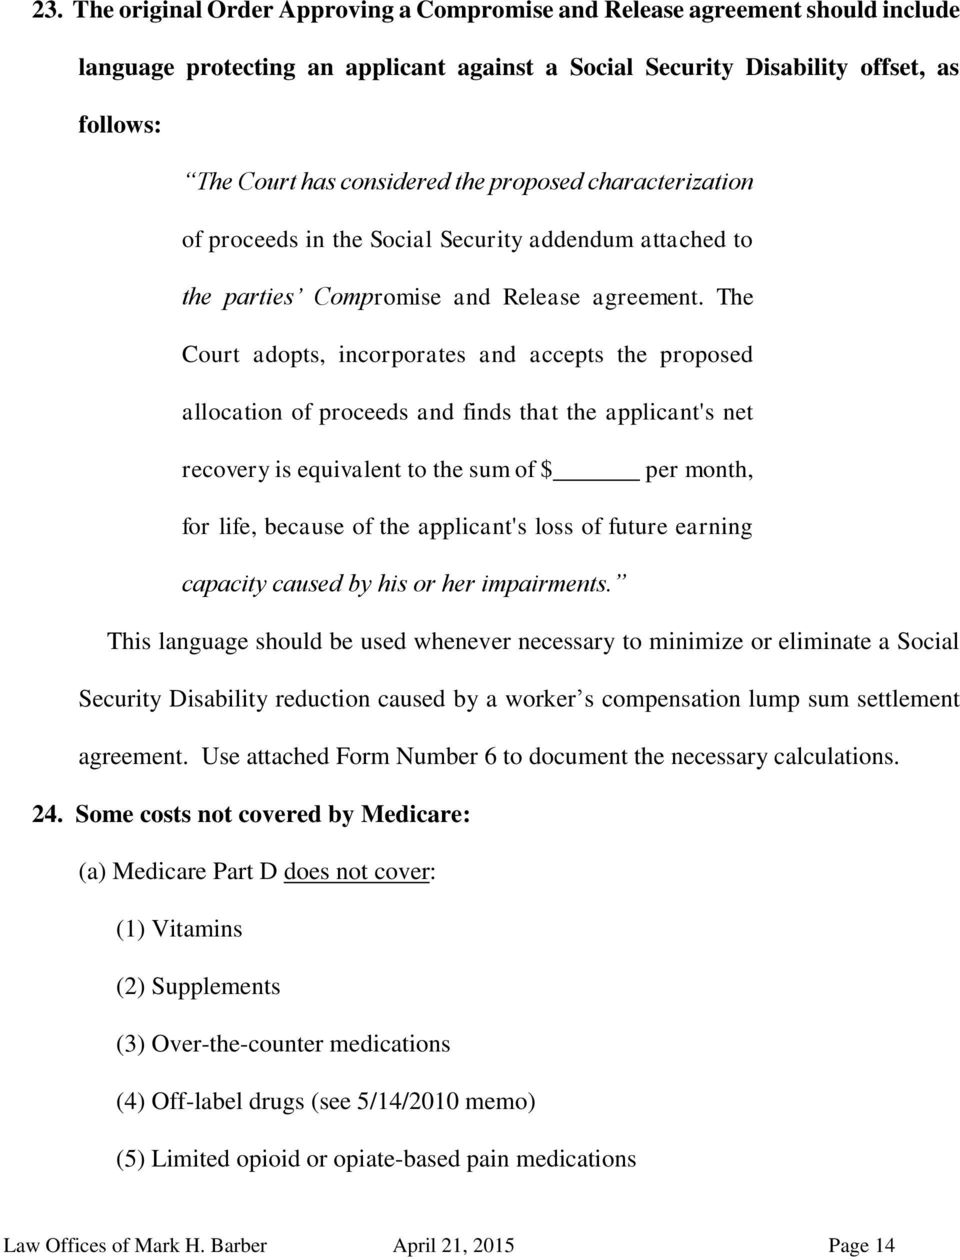 The Court adopts, incorporates and accepts the proposed allocation of proceeds and finds that the applicant's net recovery is equivalent to the sum of $ per month, for life, because of the